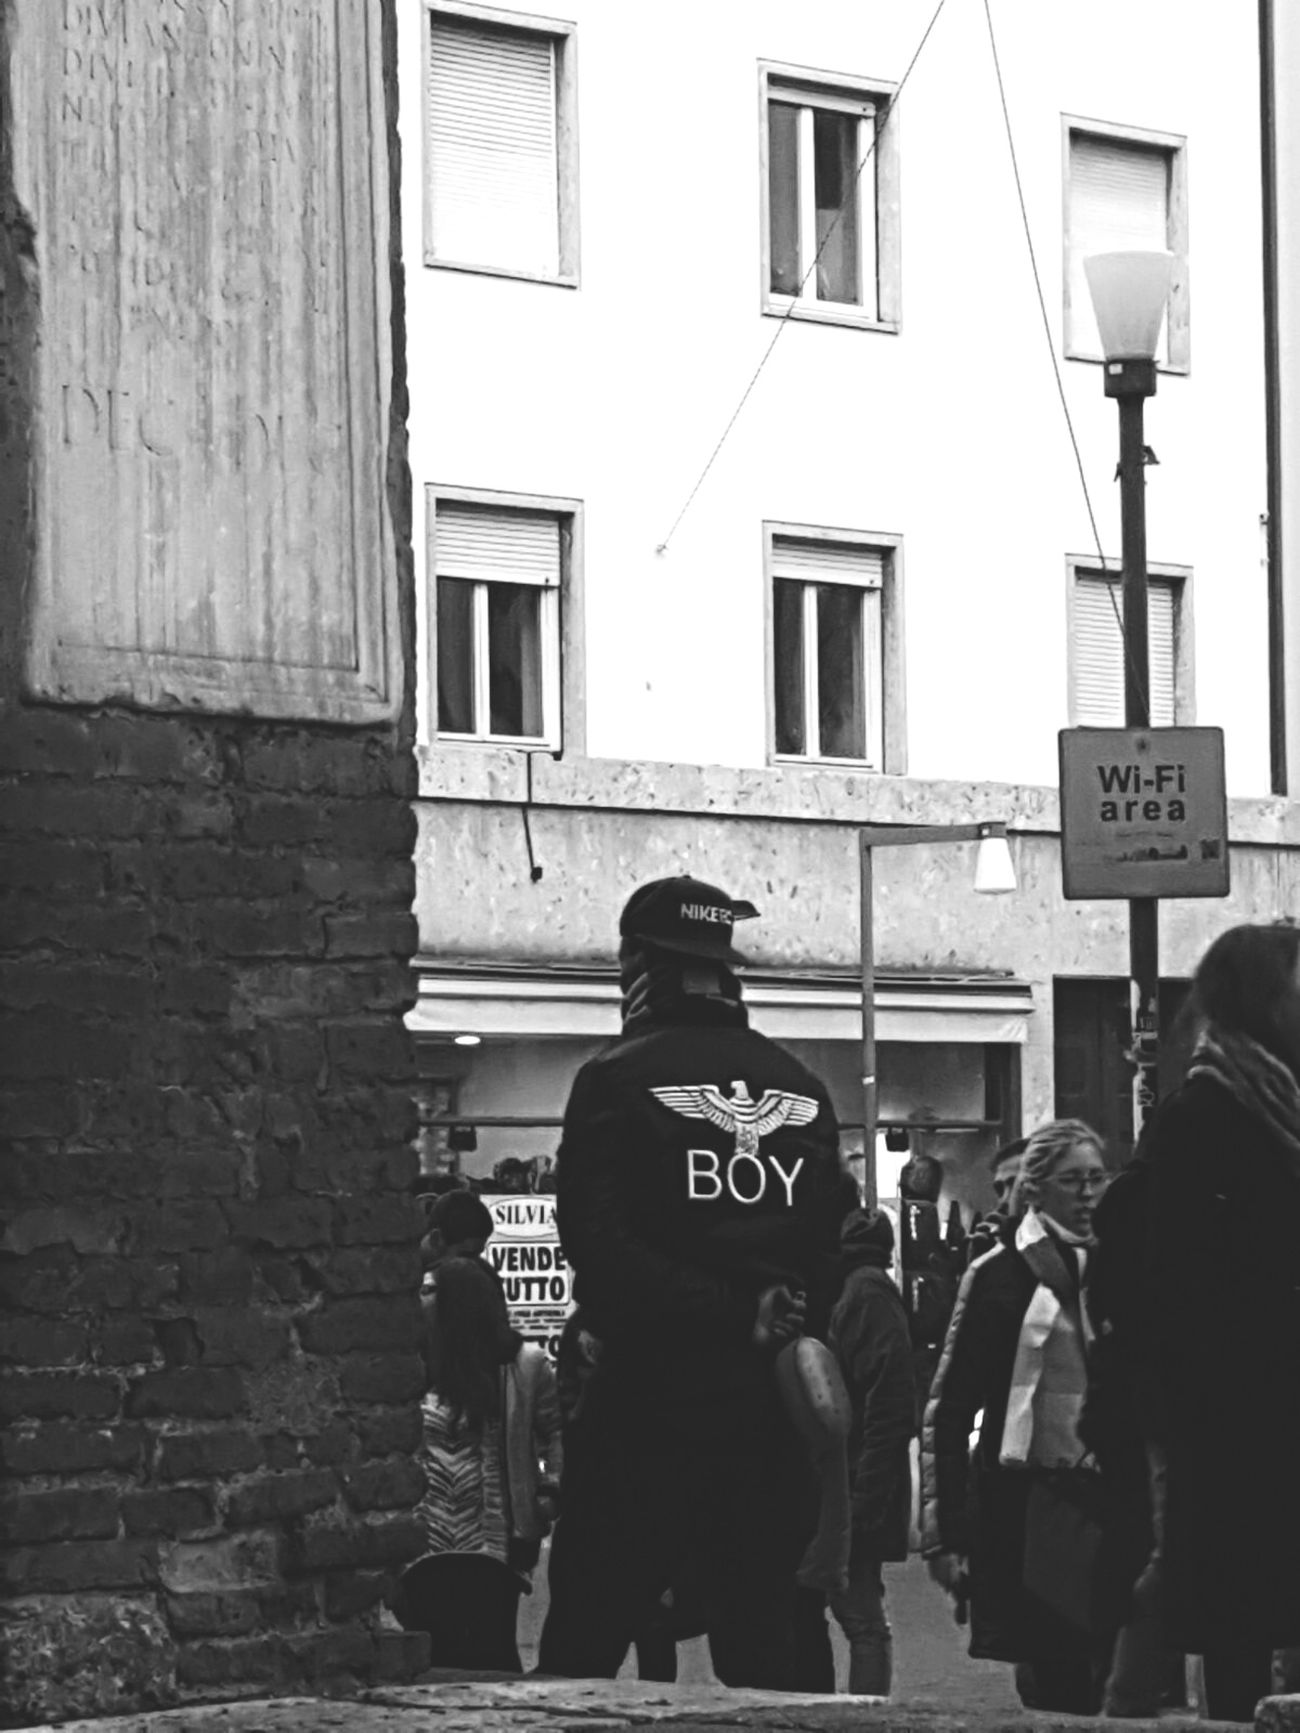 Block Real People Outdoors City People EyeEm Gallery Eye4photography  Milan People Photography My Point Of View Building Exterior Street Photography Streetphoto_bw Street Street Life Streetphotography Eye4photography  Milano Street Portrait Urban Exploration Urban Lifestyle Urbanphotography